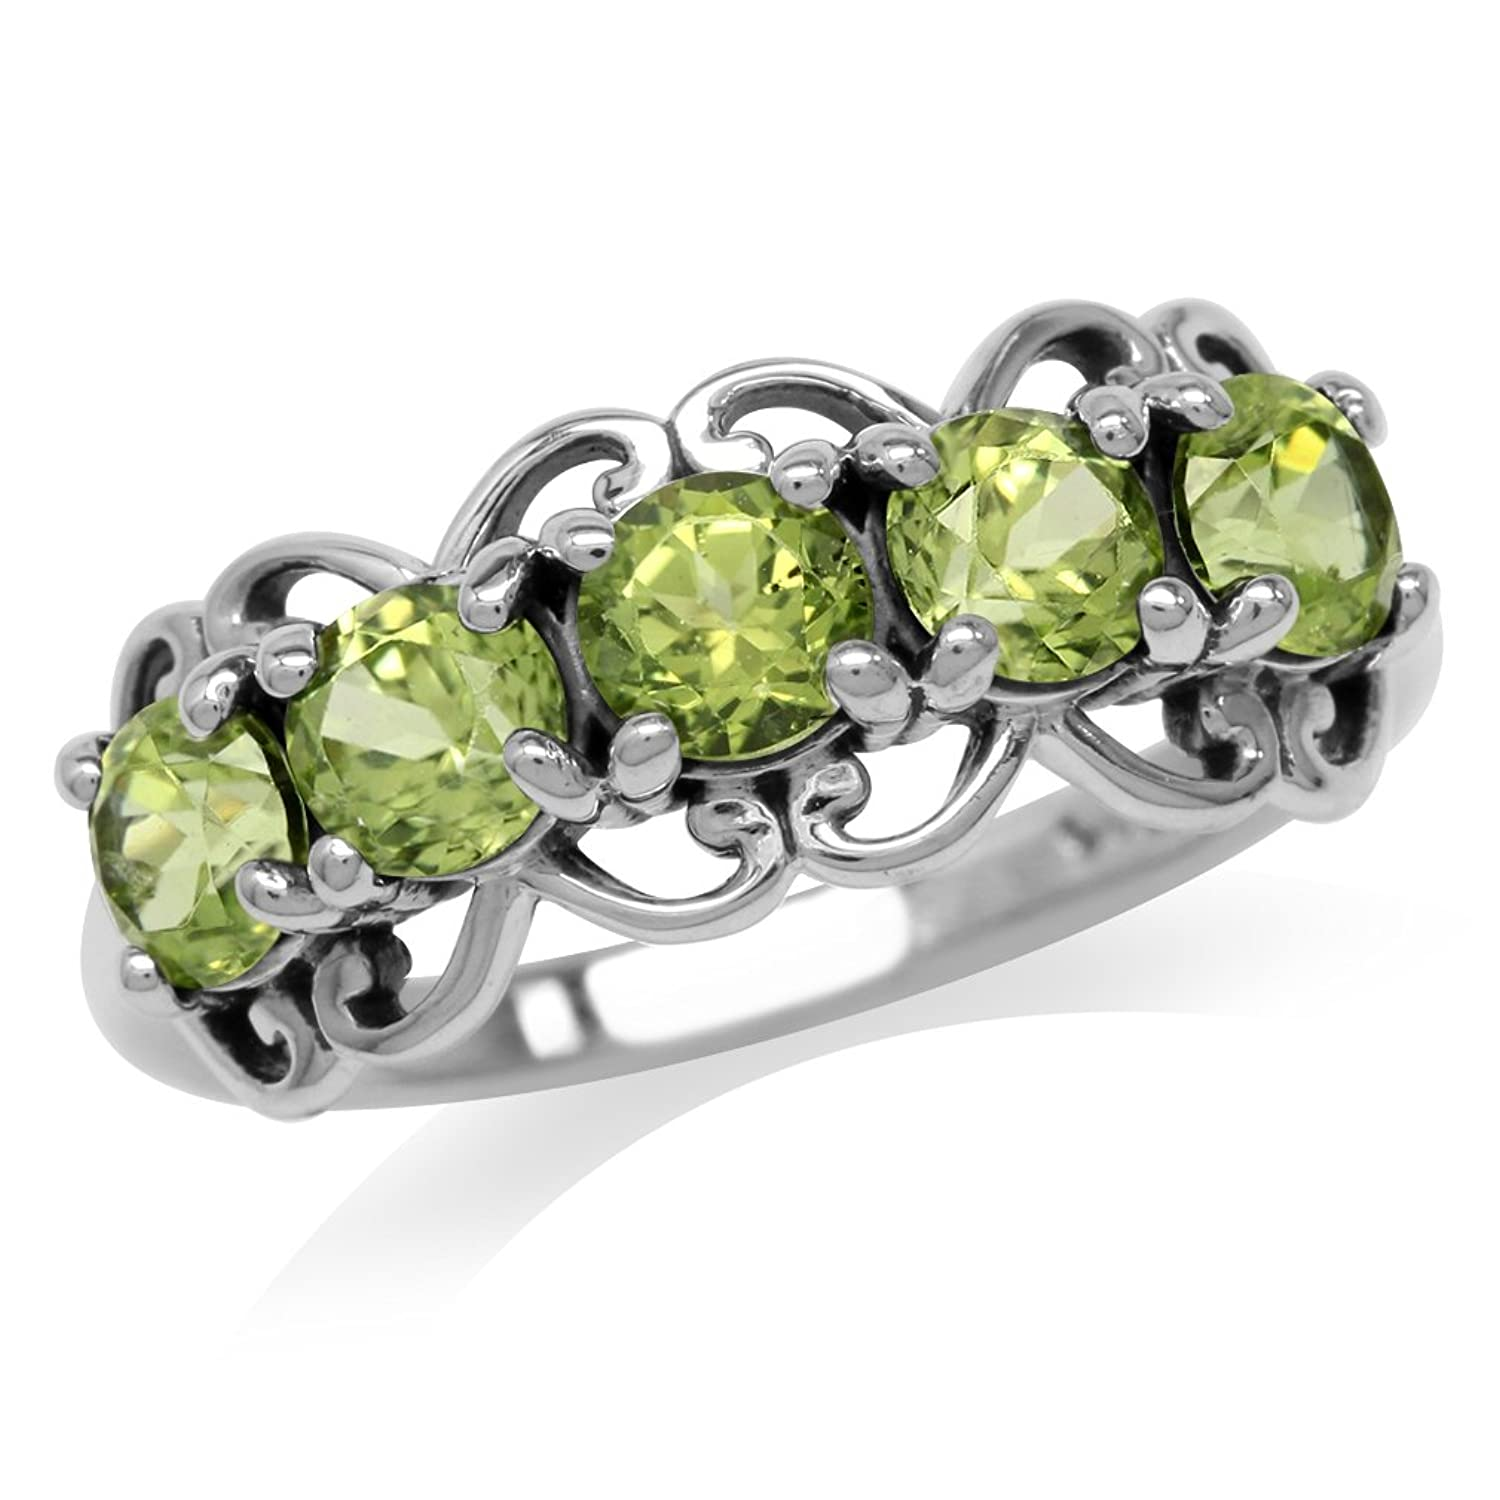 1.5ct. 5-Stone Natural Peridot 925 Sterling Silver Victorian Style Ring